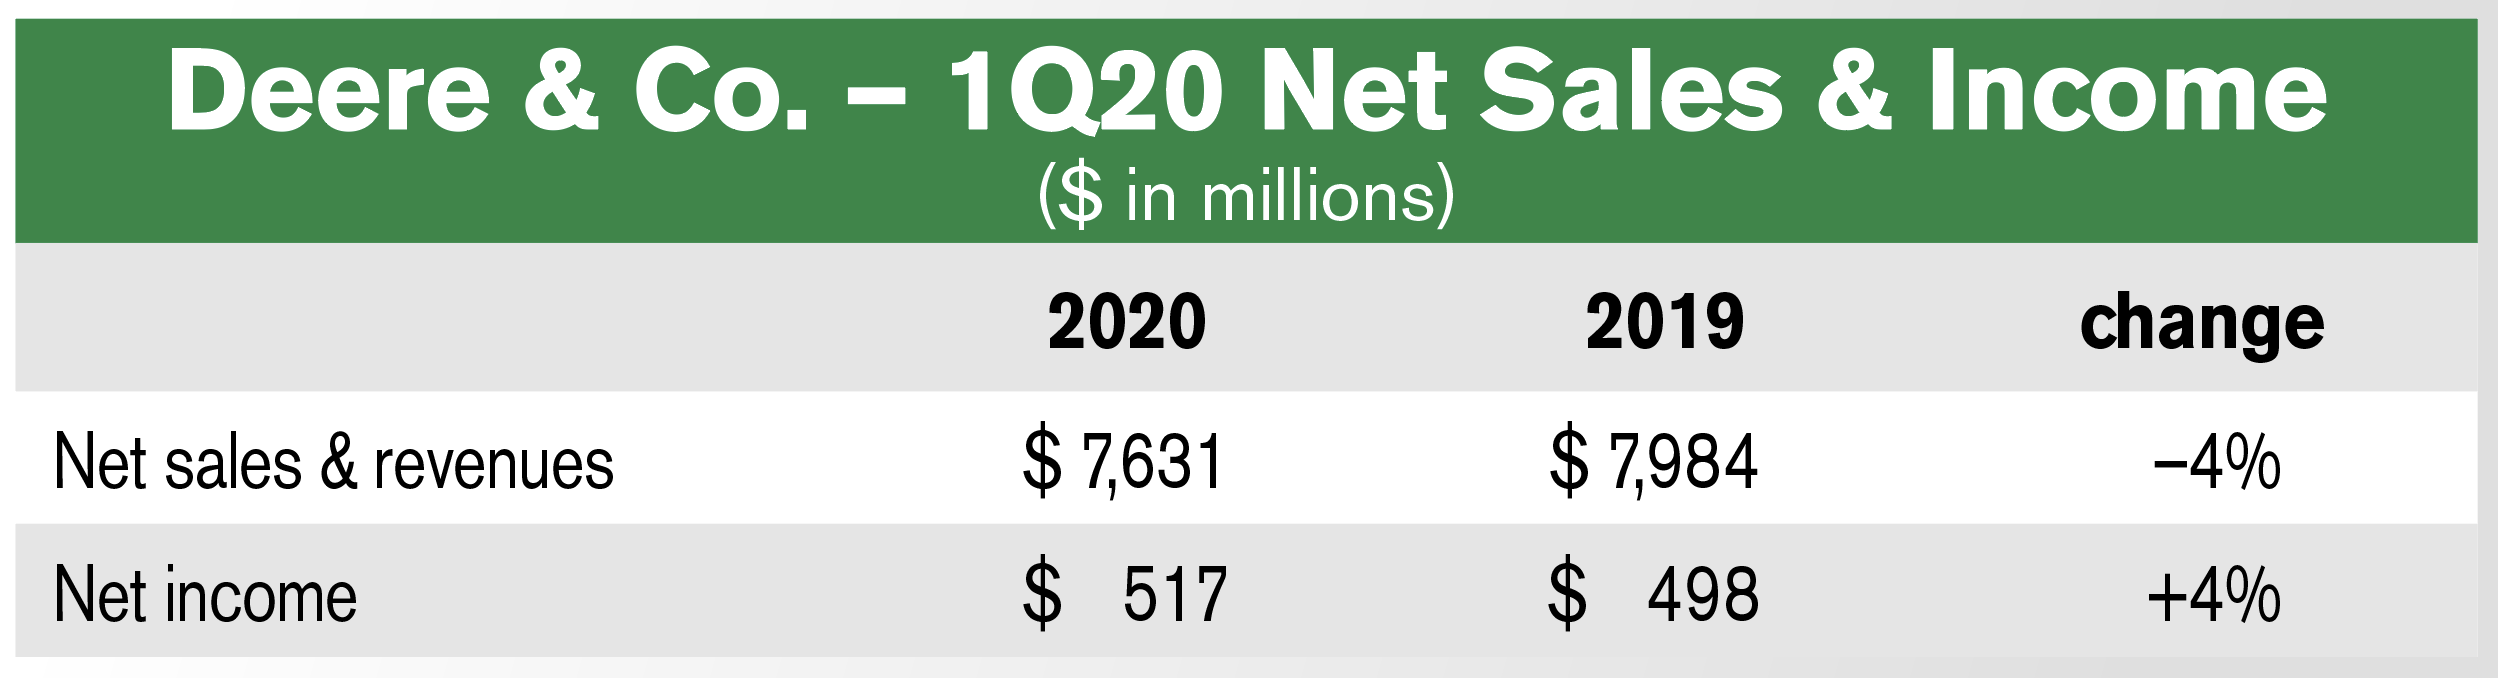 Deere 1Q20 Net Sales & Income